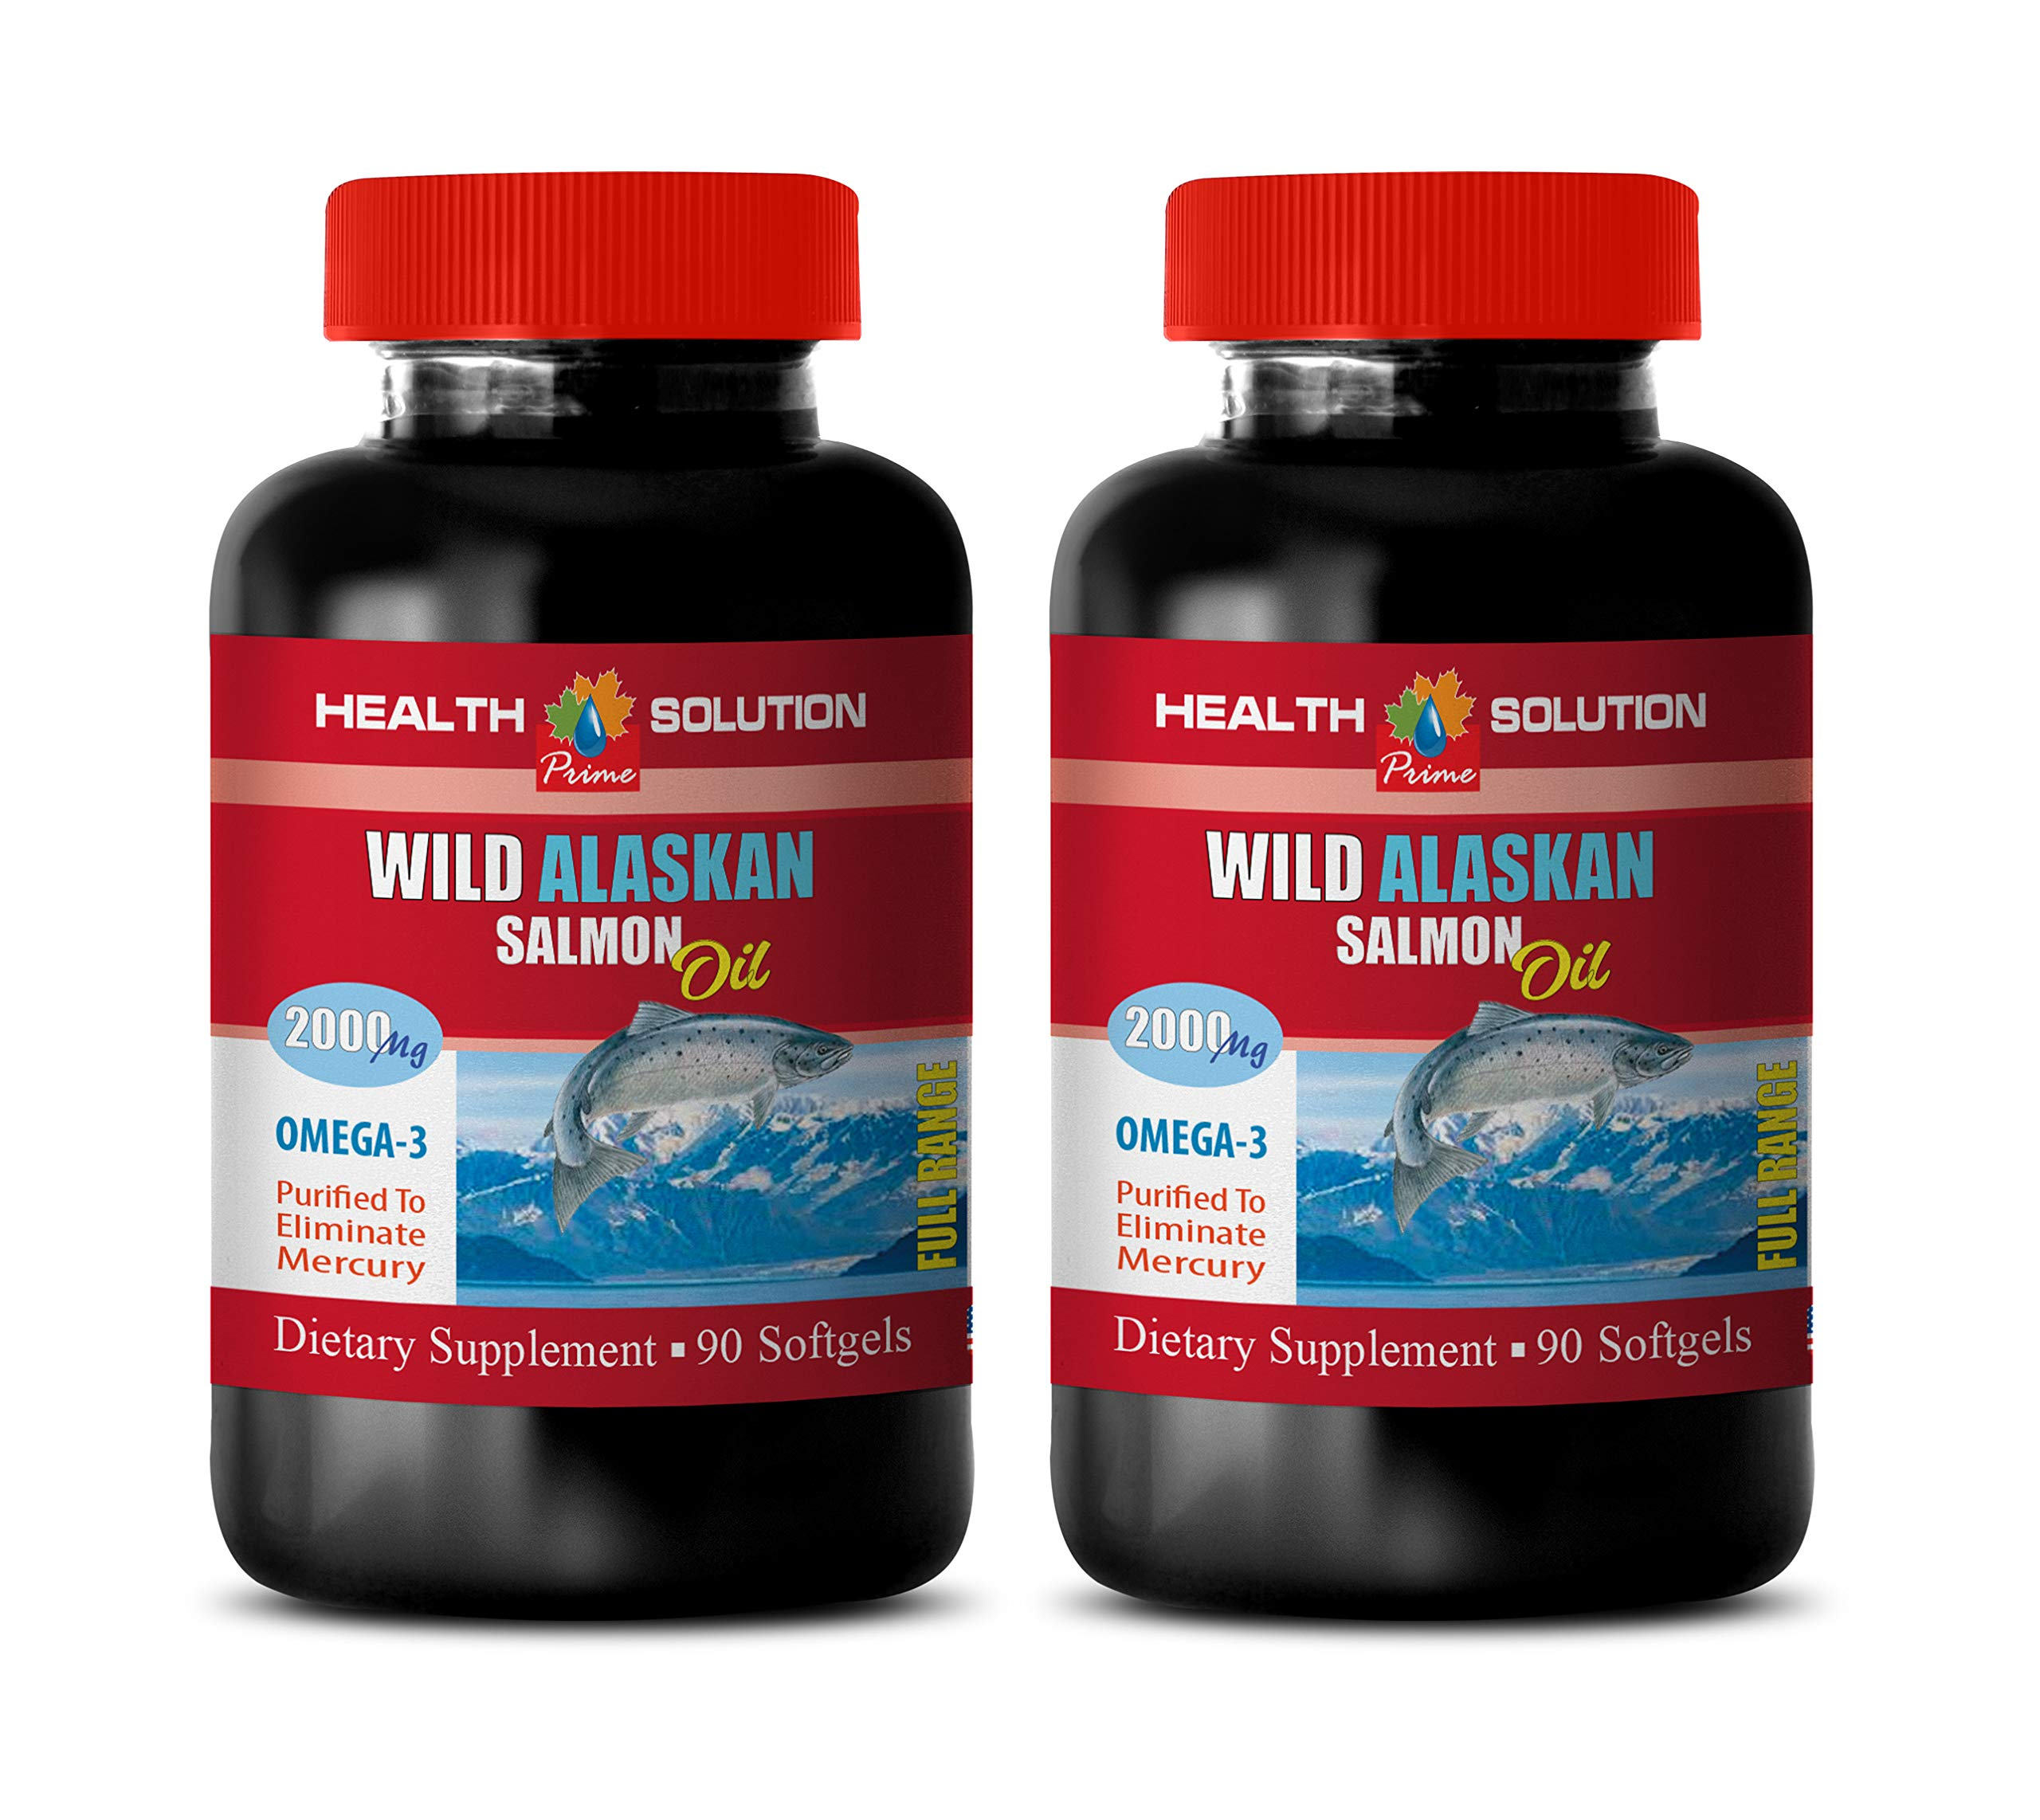 Brain Function Energy Supplement - Wild Alaskan Salmon Oil 2000 MG - Omega 3 - Fish Oil Omega 3 softgels - 2 Bottles 180 Softgels by Health Solution Prime